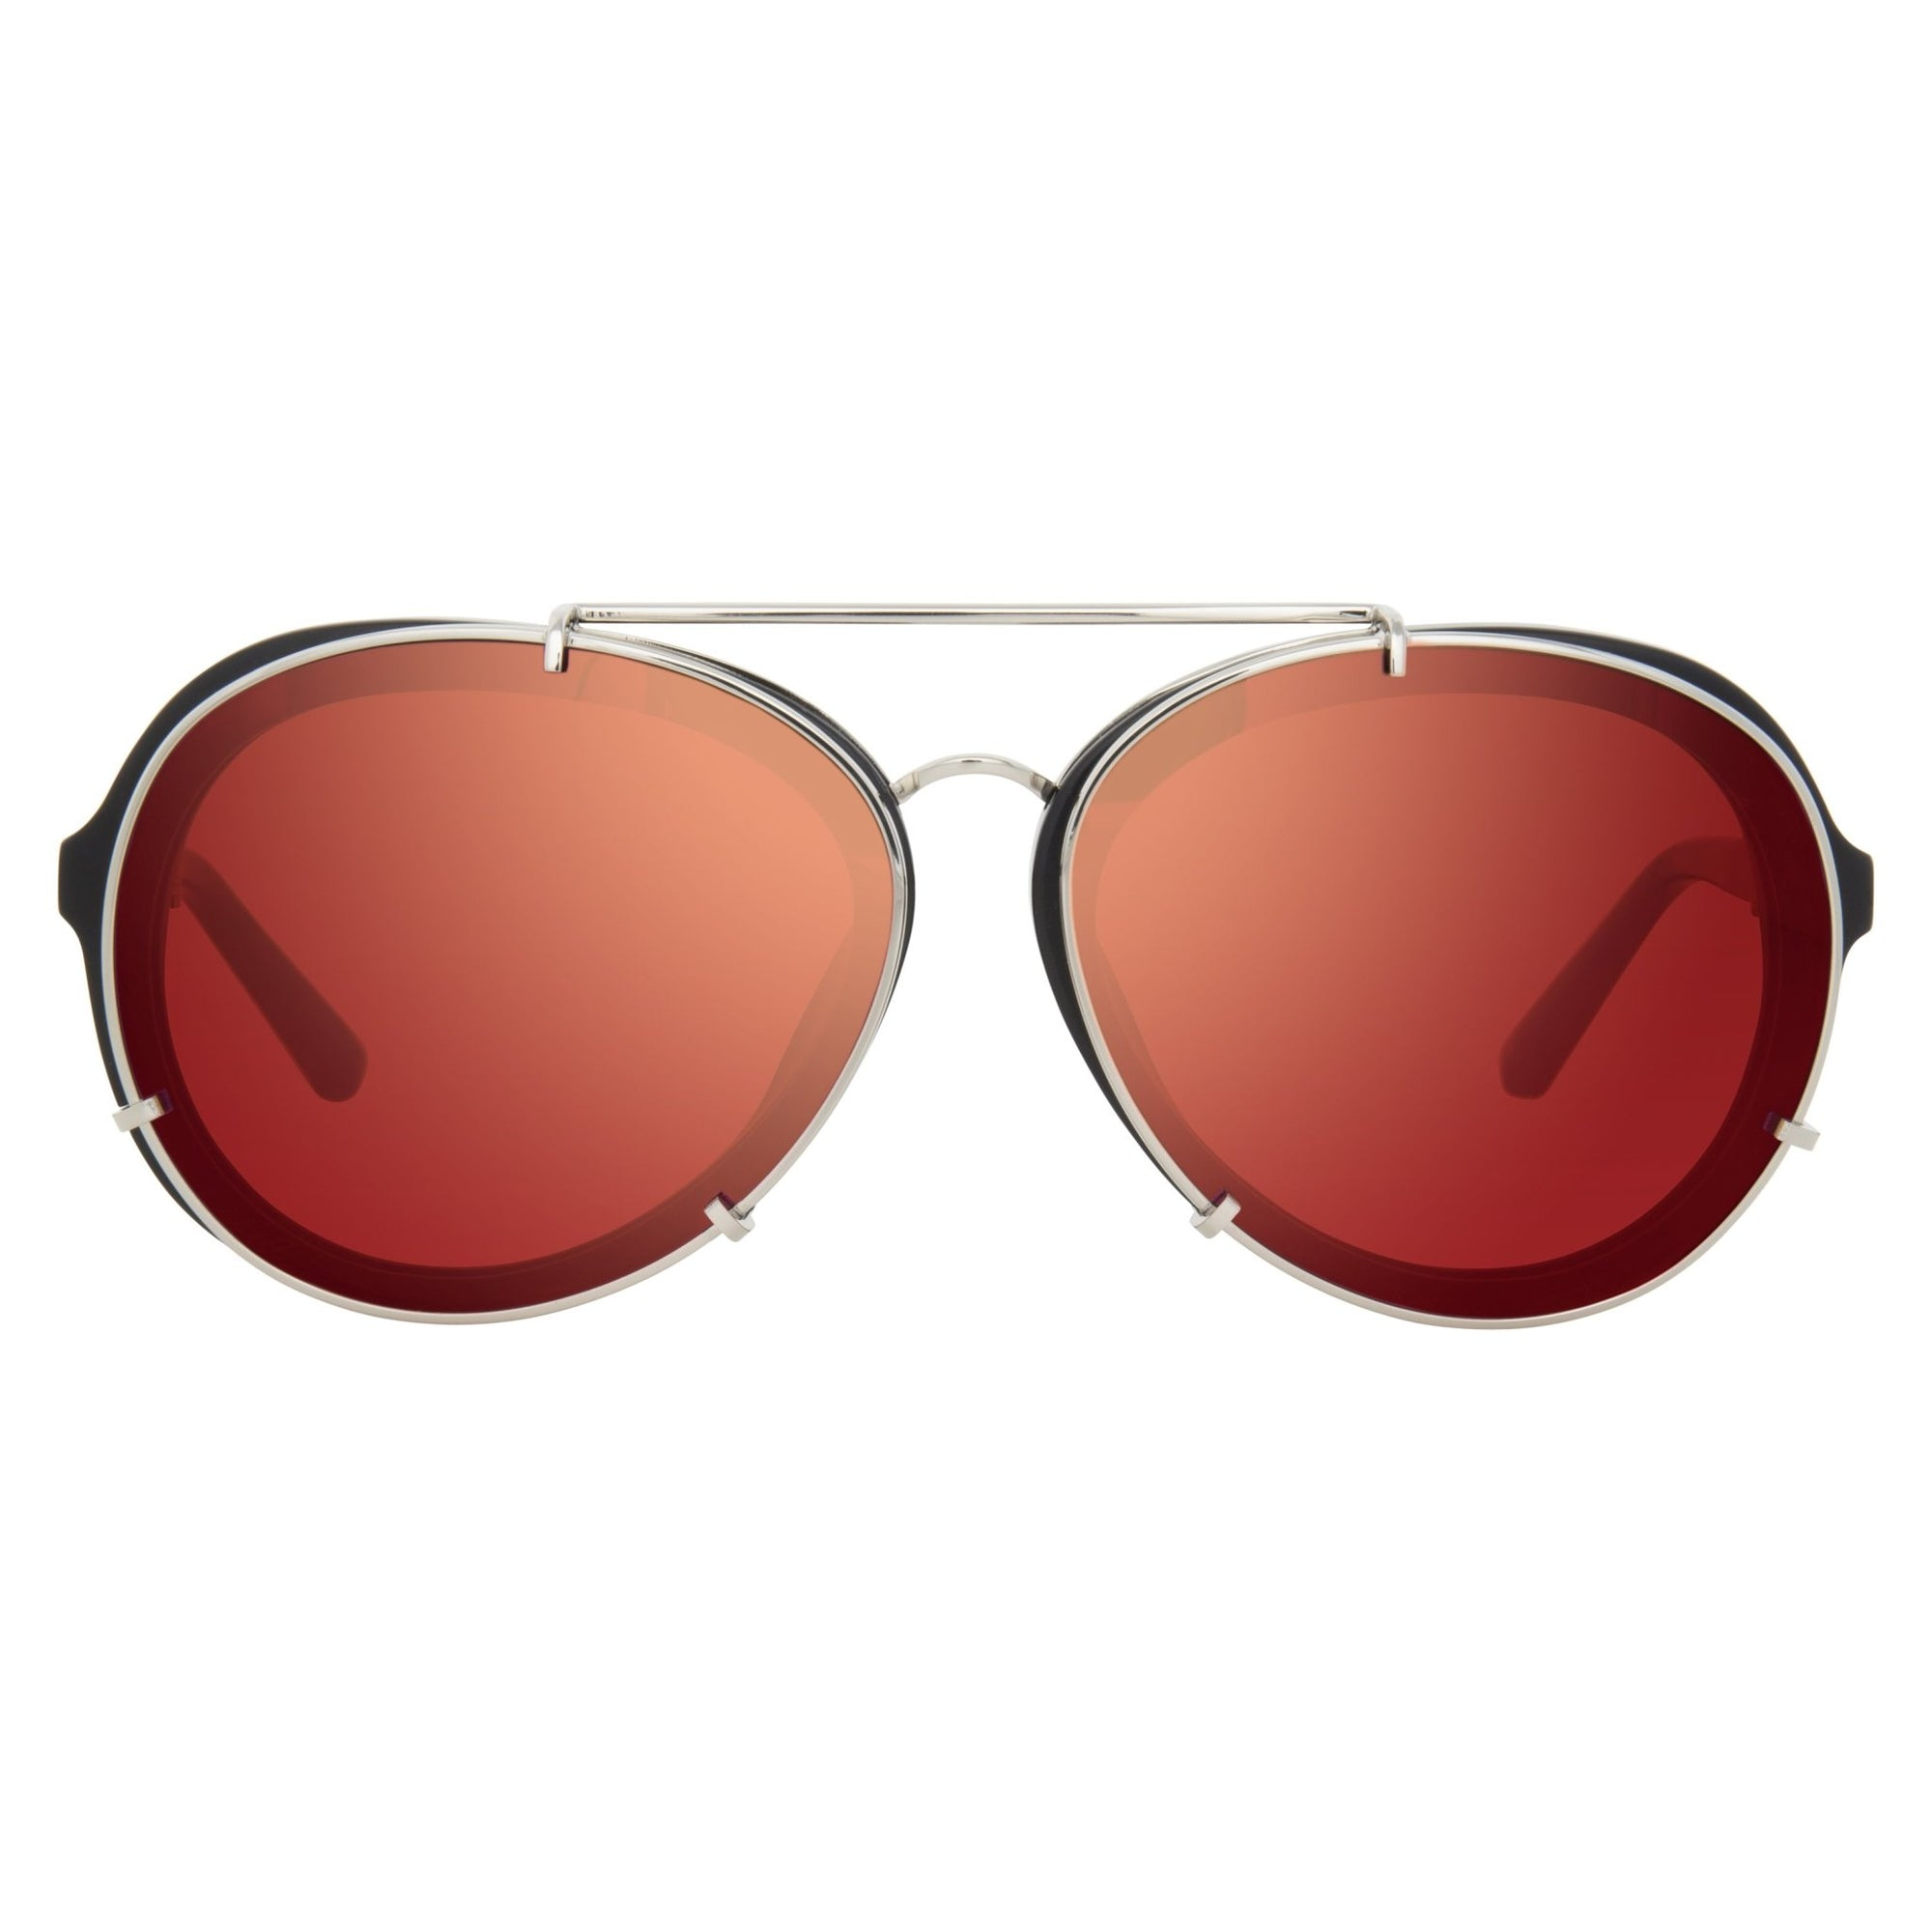 Phillip Lim Sunglasses Brushed Black and Nickel Aviator with Red Mirror Lenses Category 2 - PL170C6SUN - Watches & Crystals